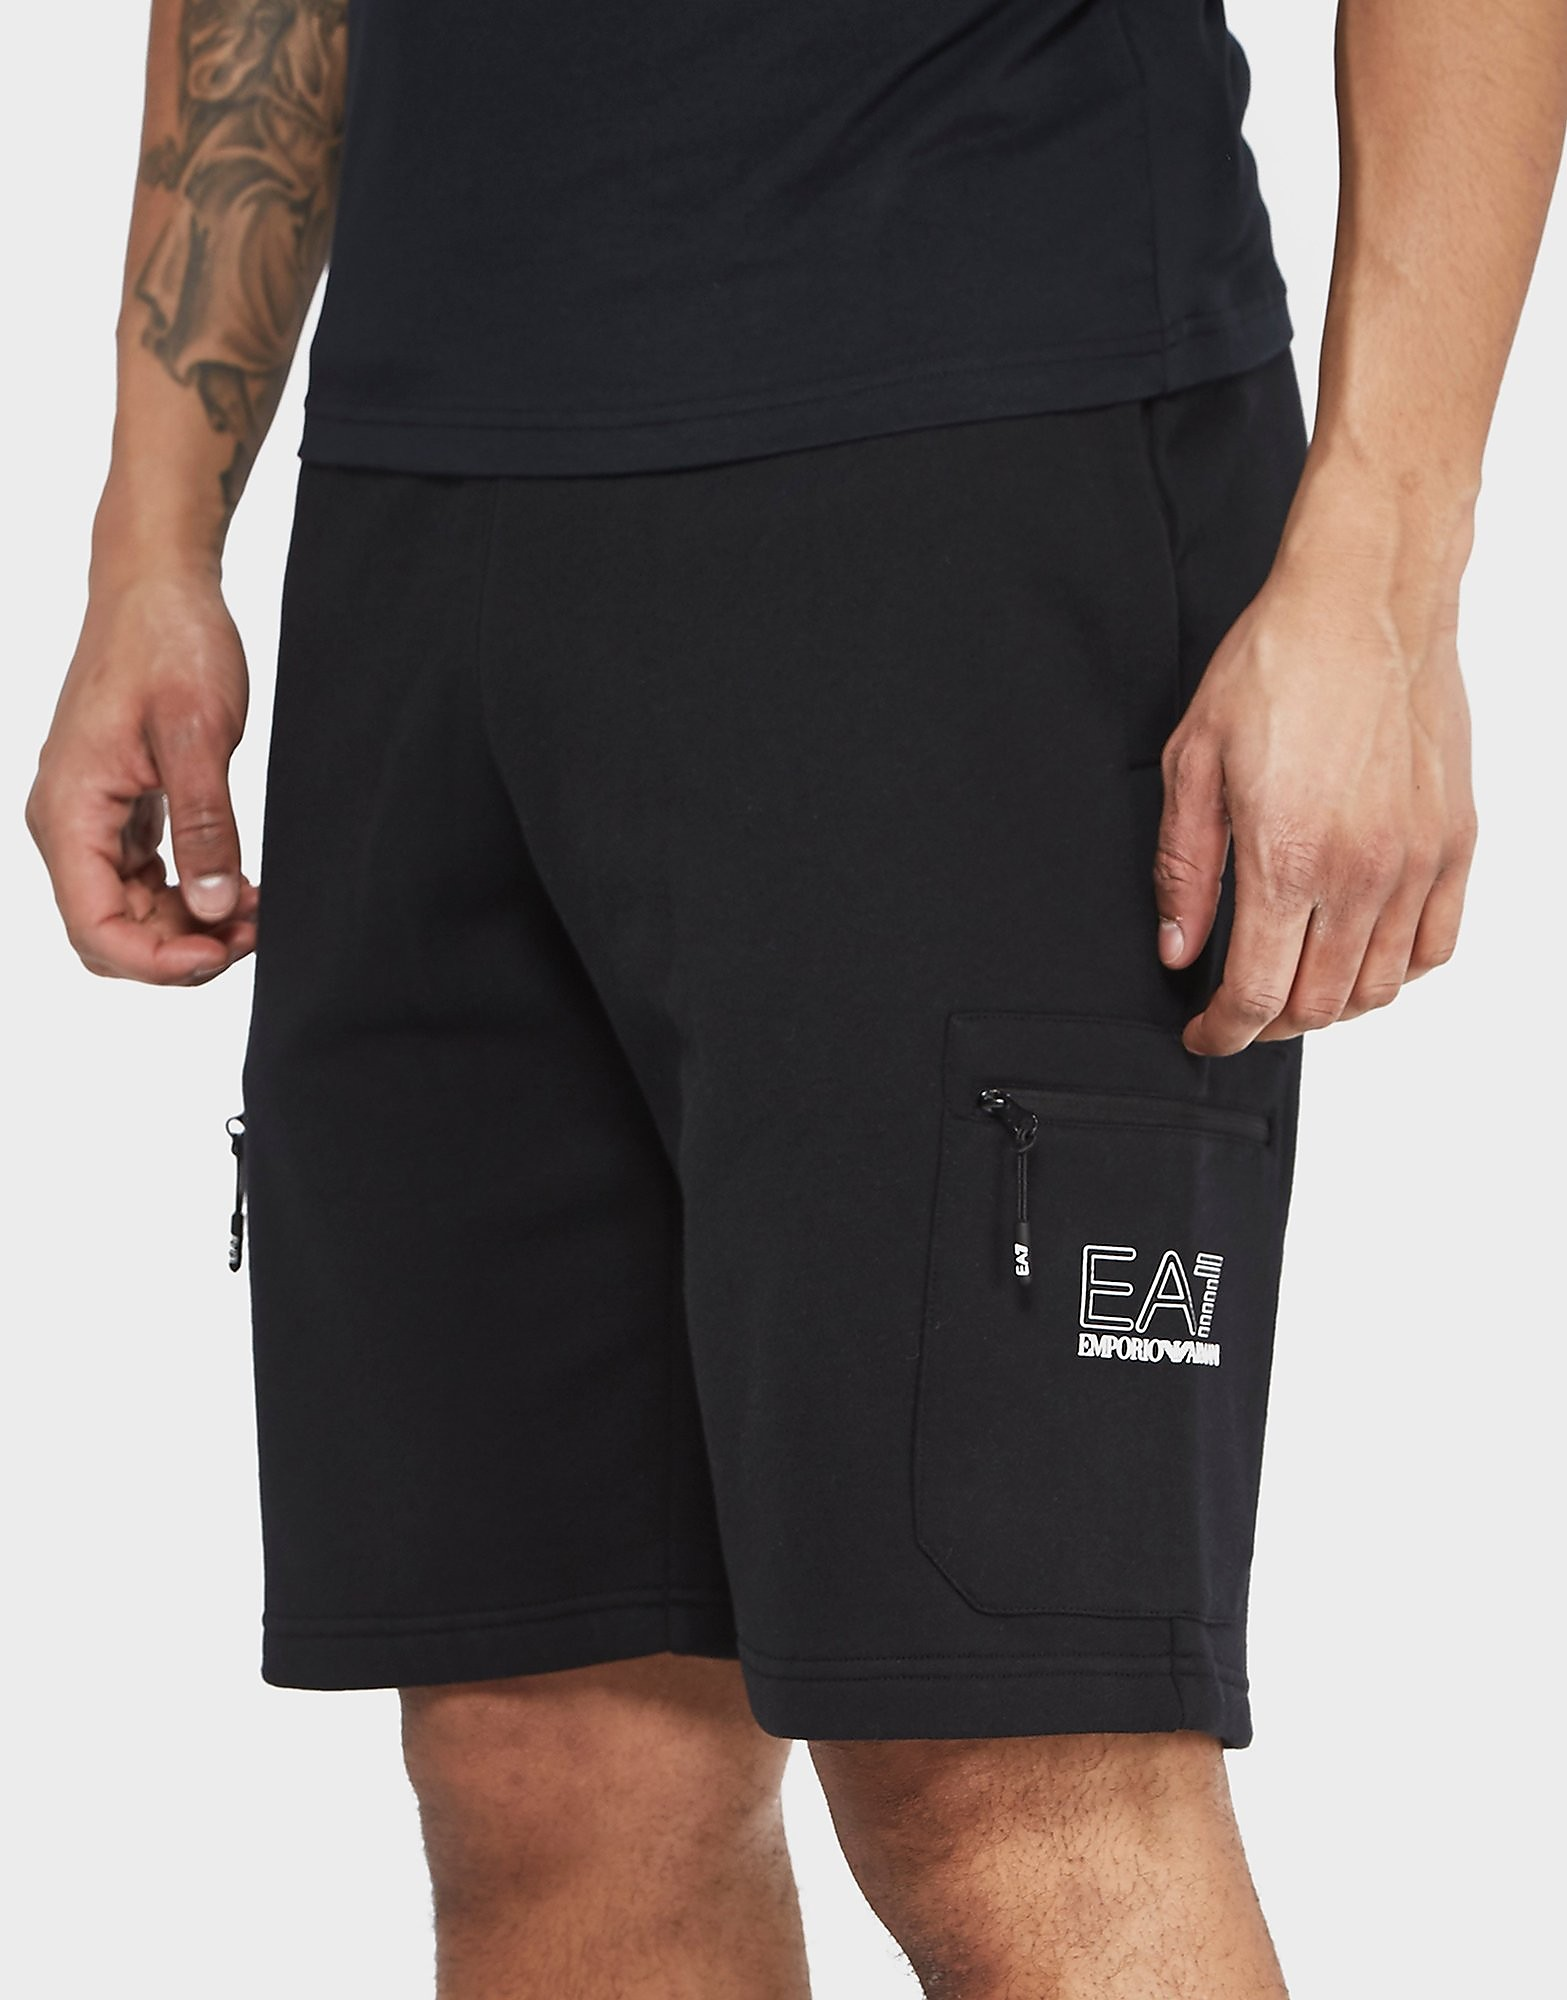 Emporio Armani EA7 259 Cargo Short - Exclusive